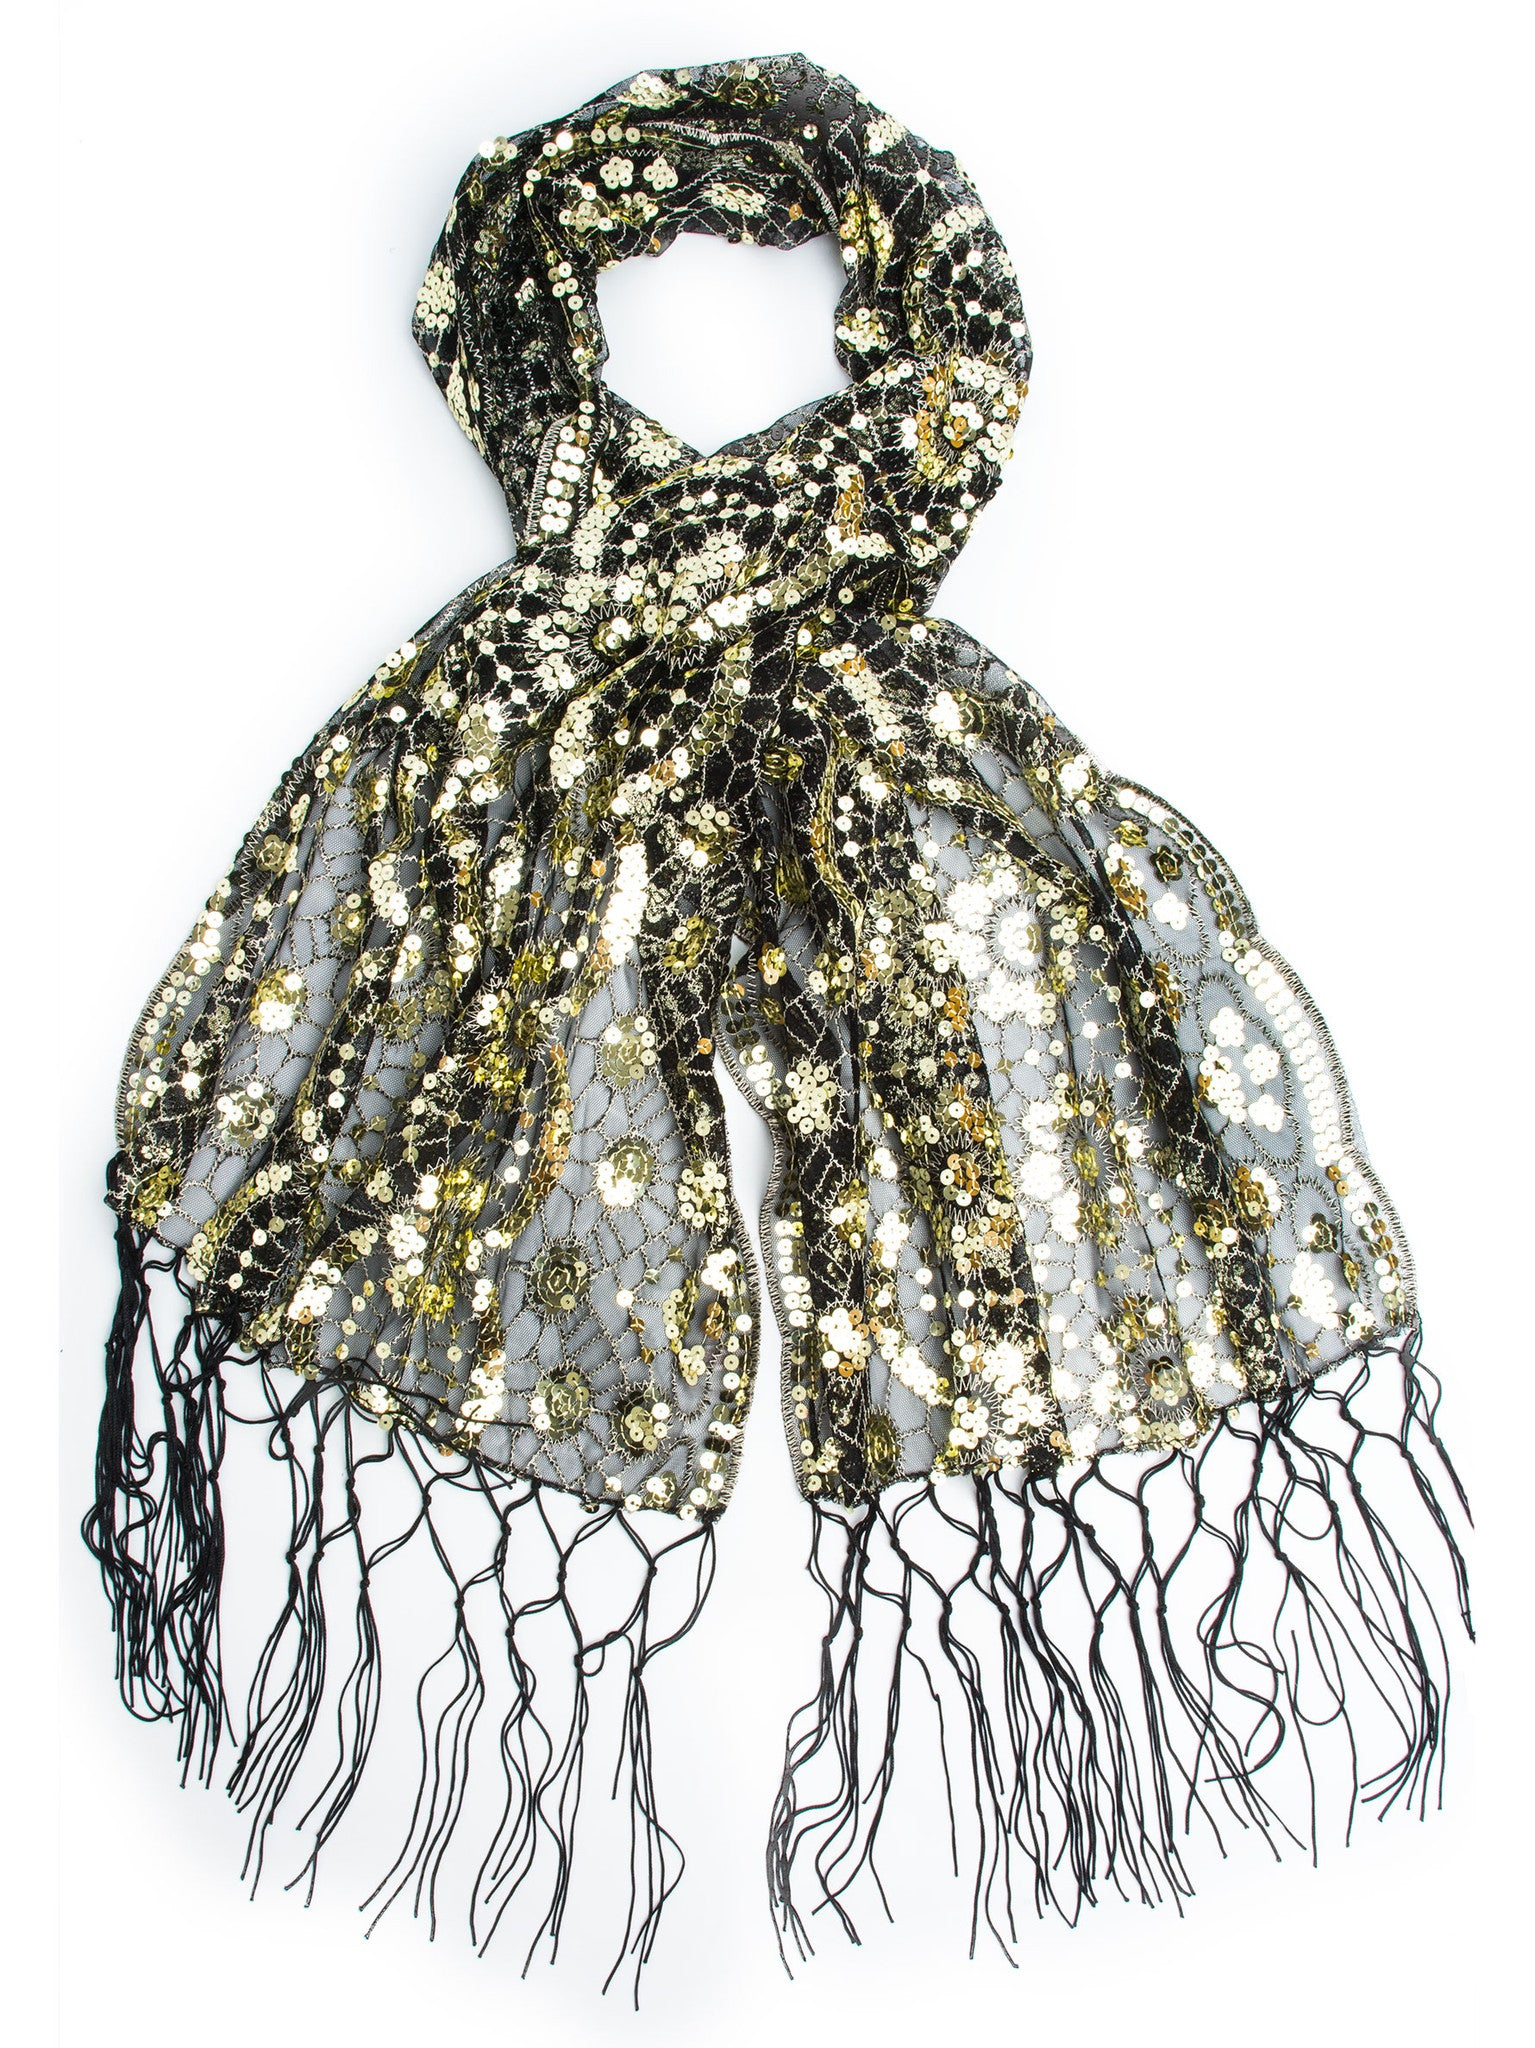 Scarves - Vera, Vintage Inspired Sequin Shawl, Evening Wrap, Embroidered Sequin Fringe Shawl or Scarf -(Black/Gold) Bohomonde  - 1